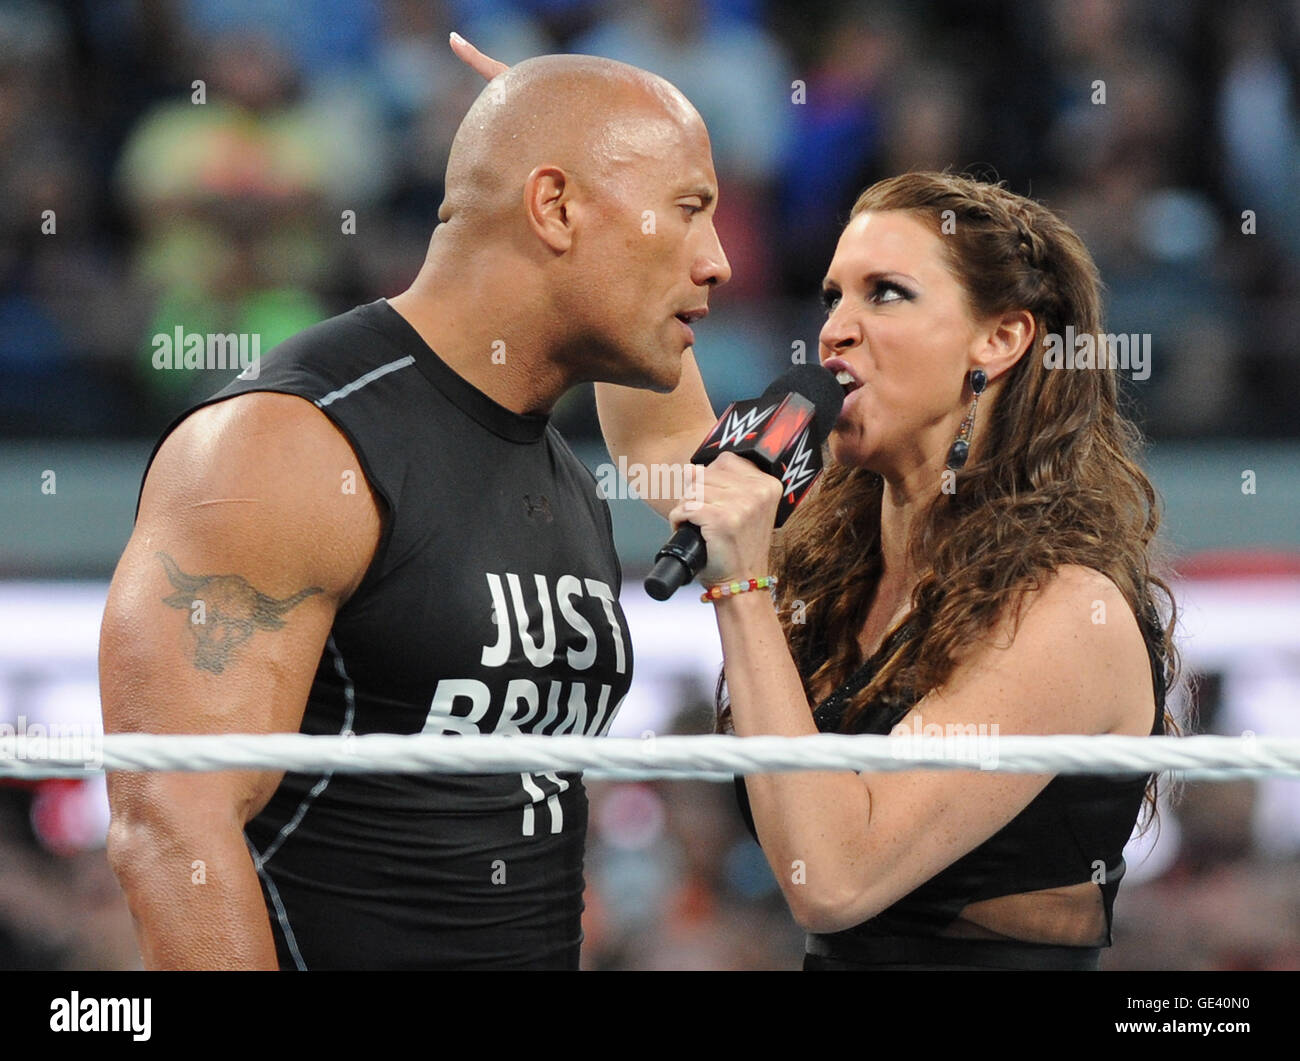 Santa Clara, Ca-  March 29: Dwayne 'The Rock' Johnson is confronted by Stephanie McMahon at Wrestlemania - Stock Image